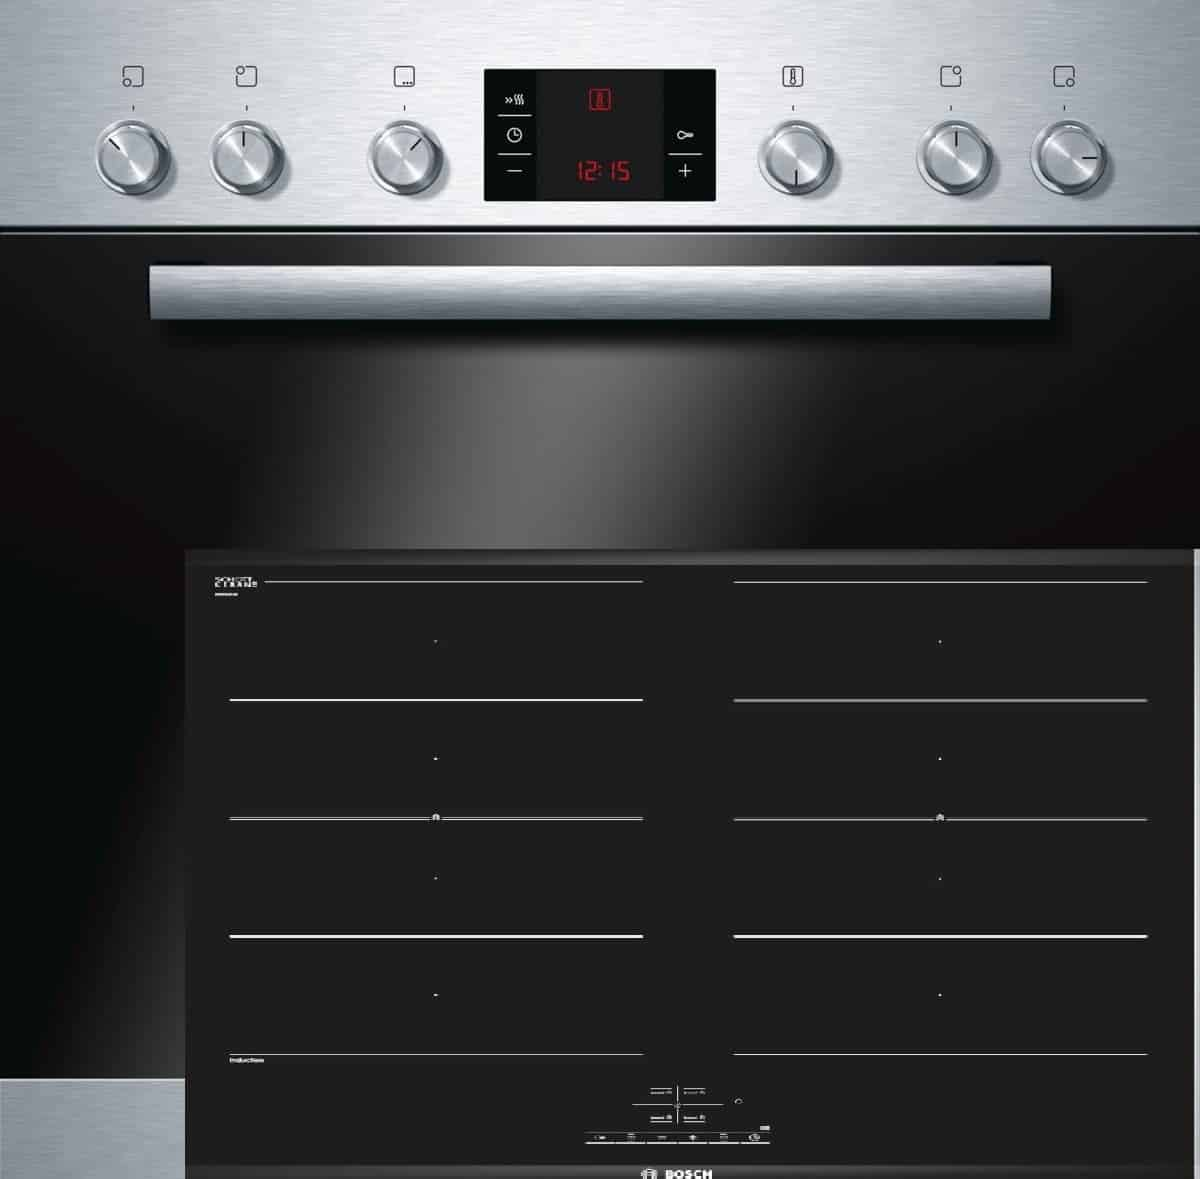 einbaubackofen bosch hnd72pf50 test ratgeber. Black Bedroom Furniture Sets. Home Design Ideas